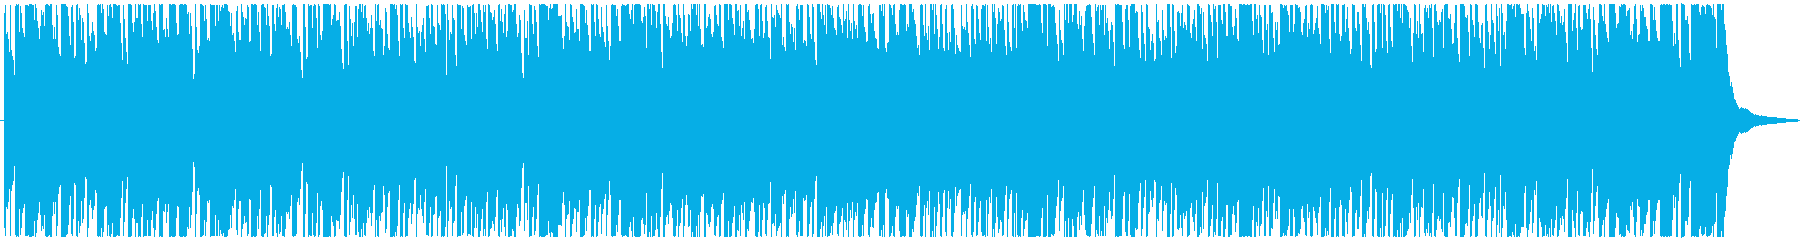 Short pops with energetic melody's reproduced waveform